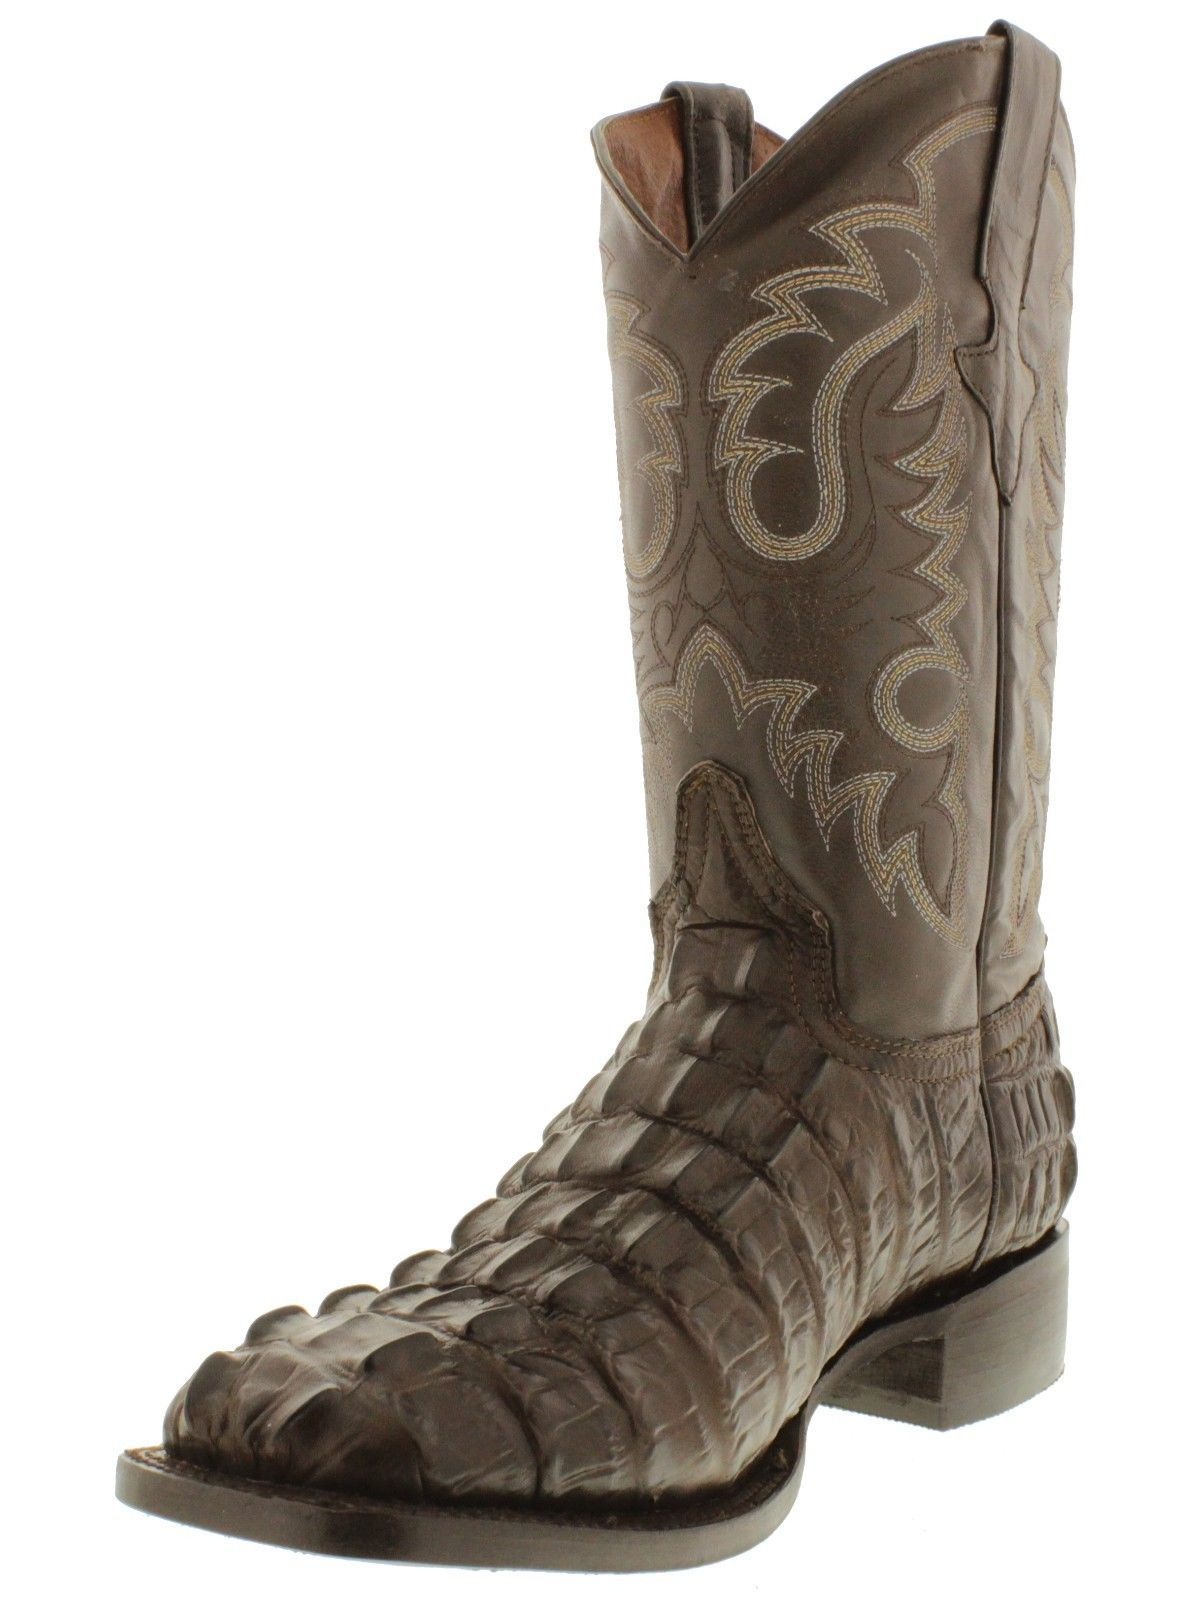 5be1c23f075 Men's brown square toe cowboy boots crocodile alligator tail western ...